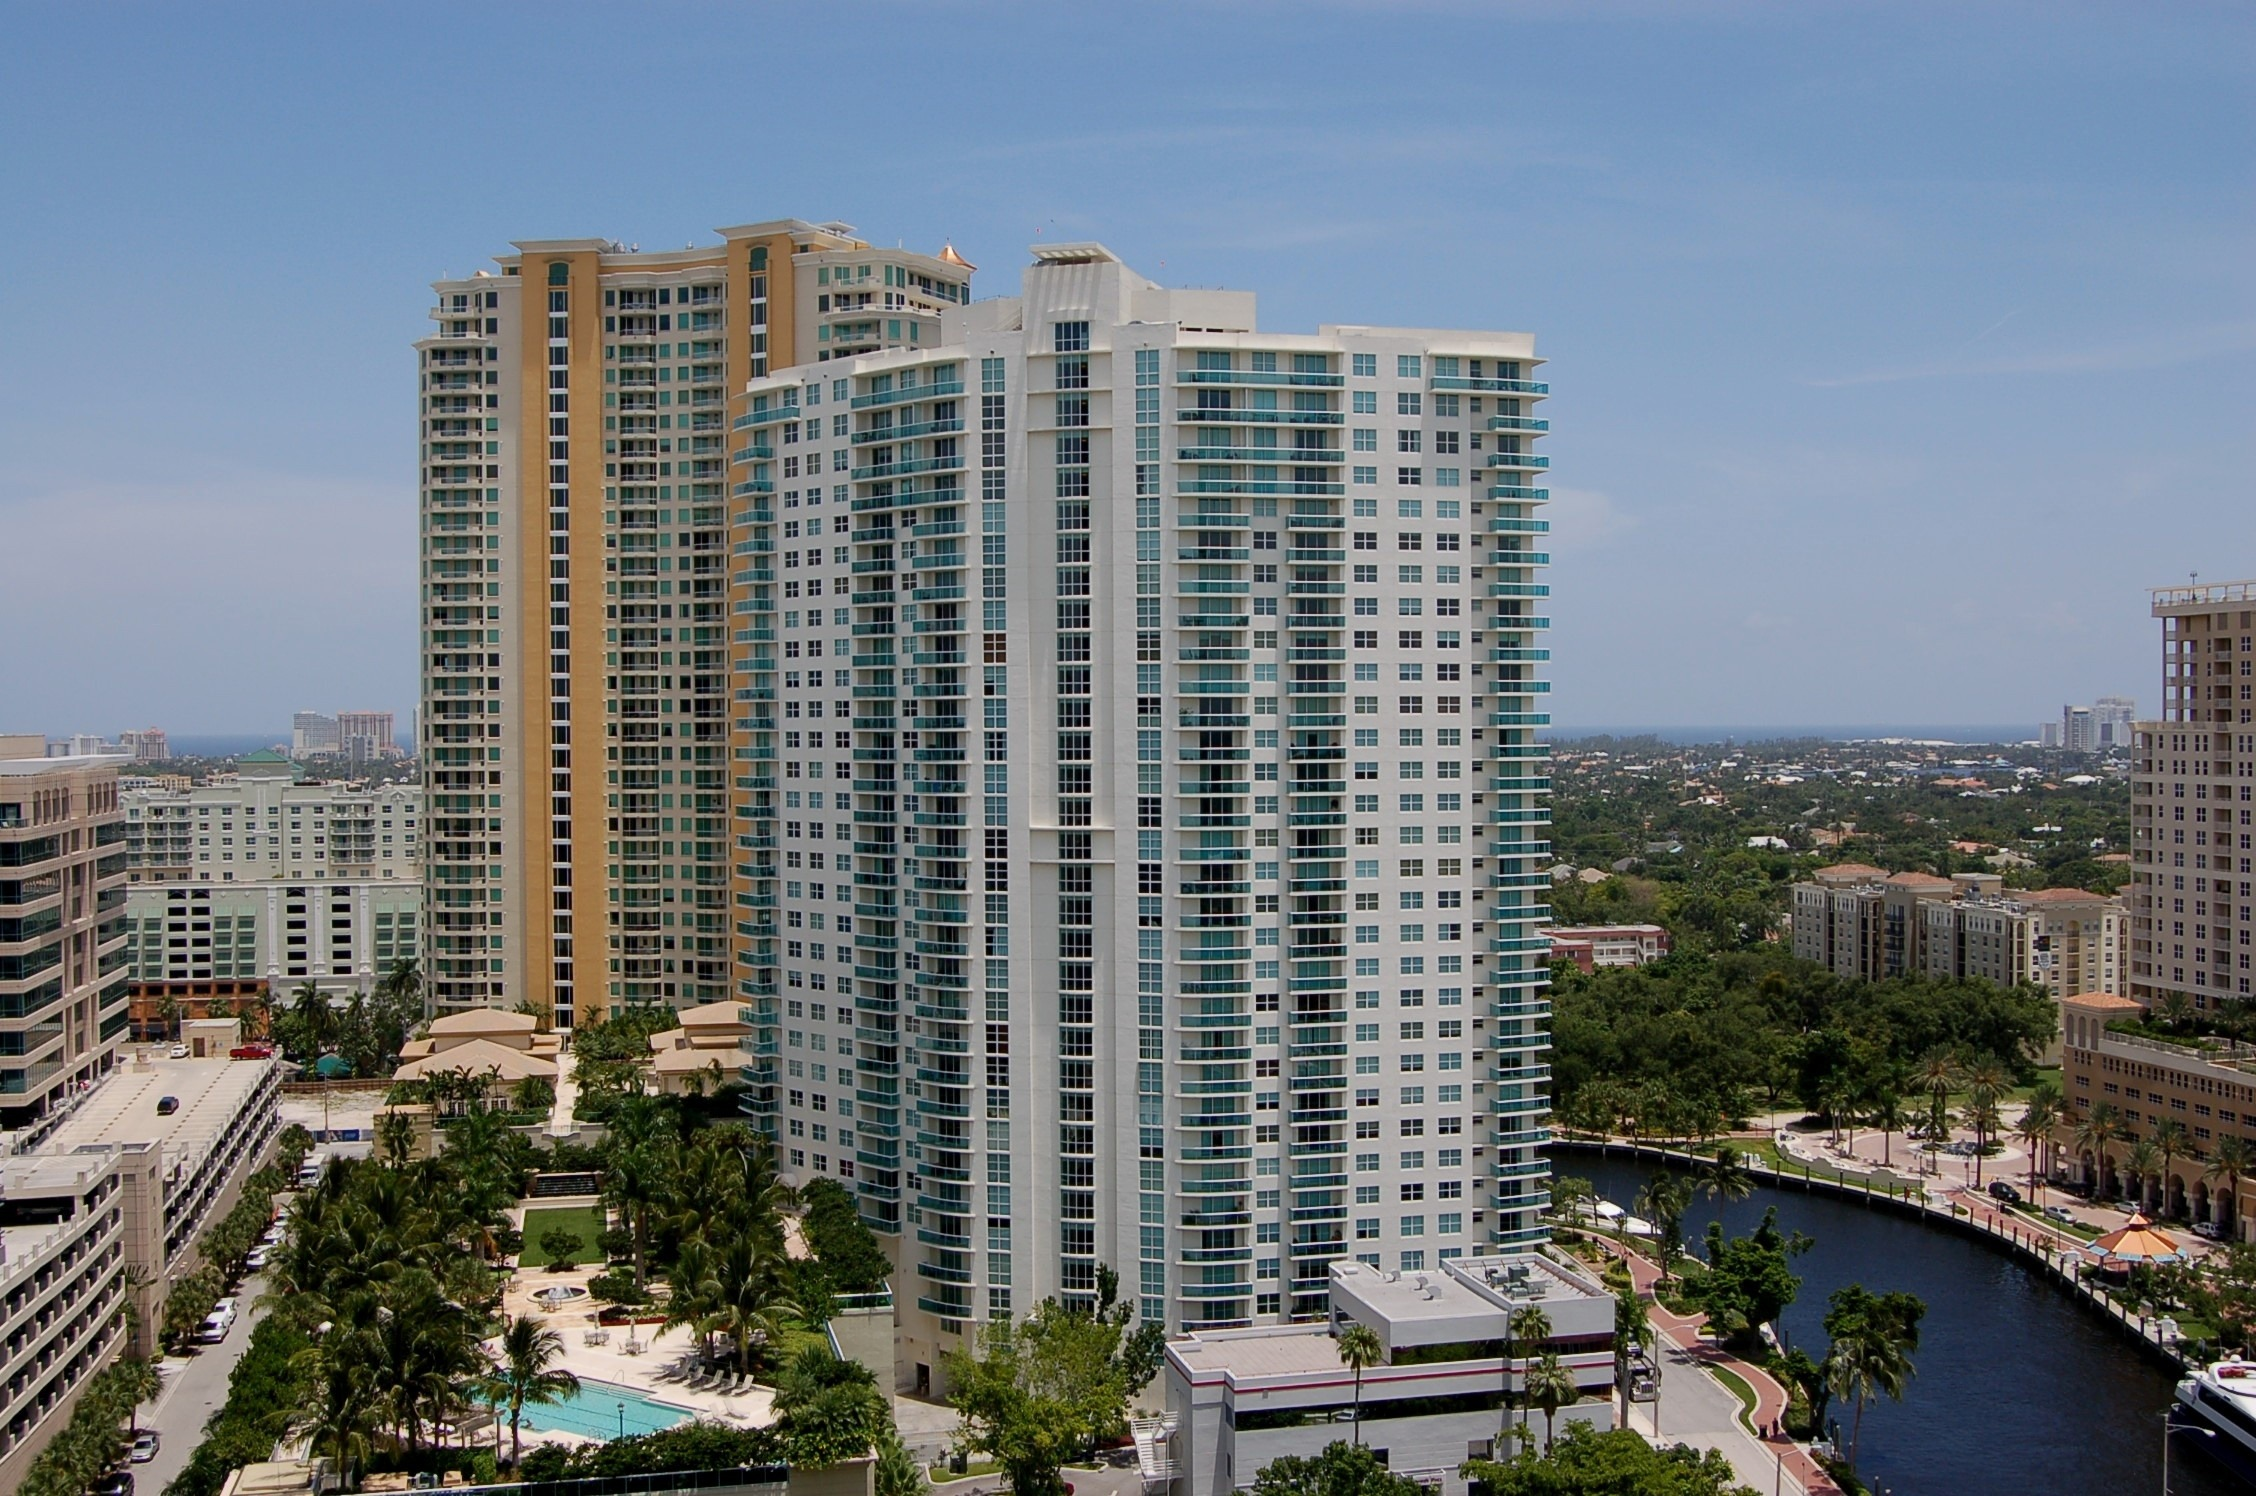 Water Garden Condos - Fort Lauderdale, FL Condos for Sale